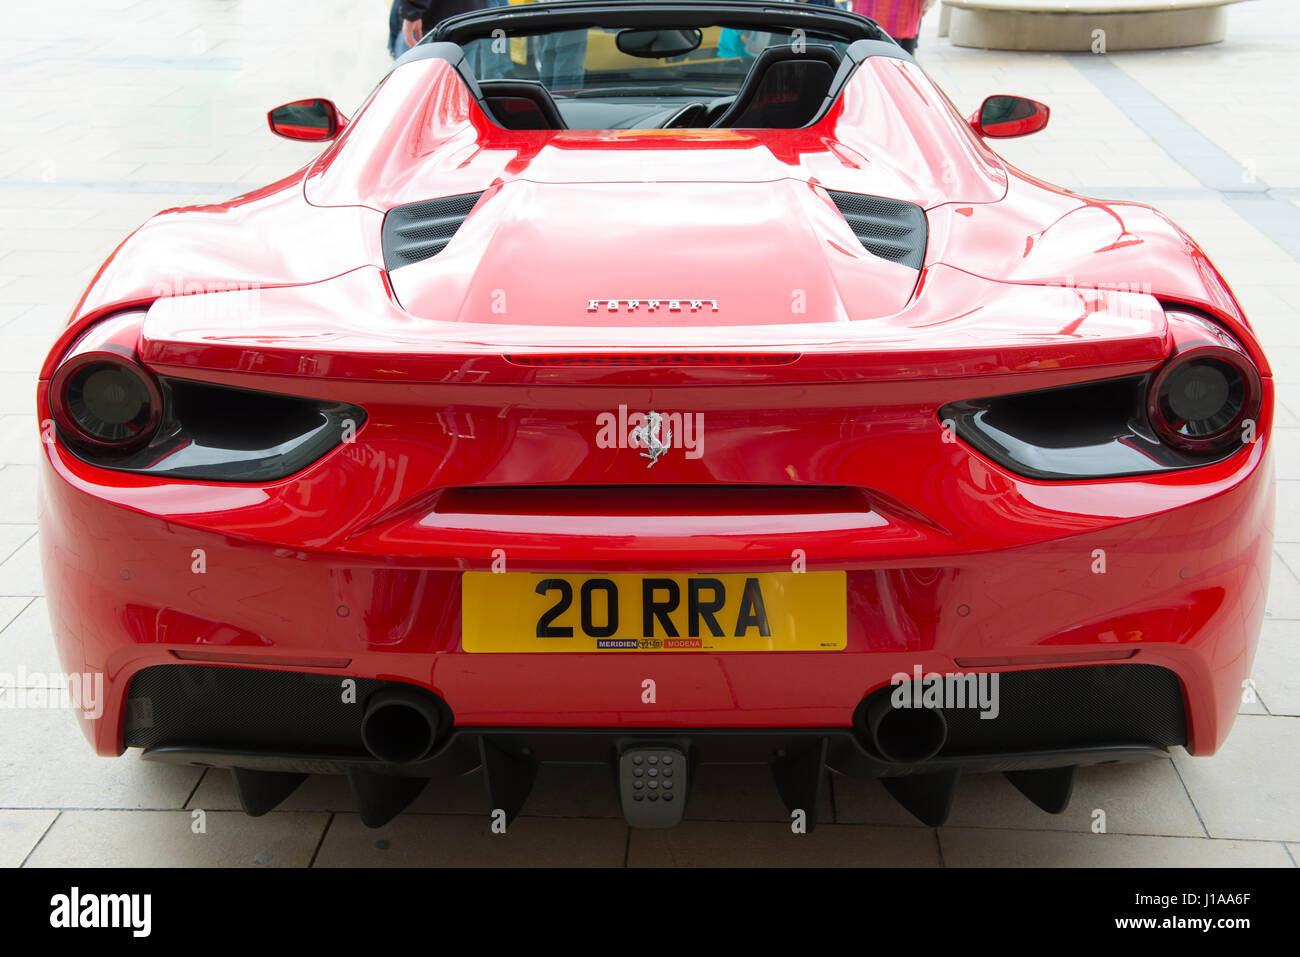 Rear View Of Ferrari Spider Luxury Supercar Stock Photo